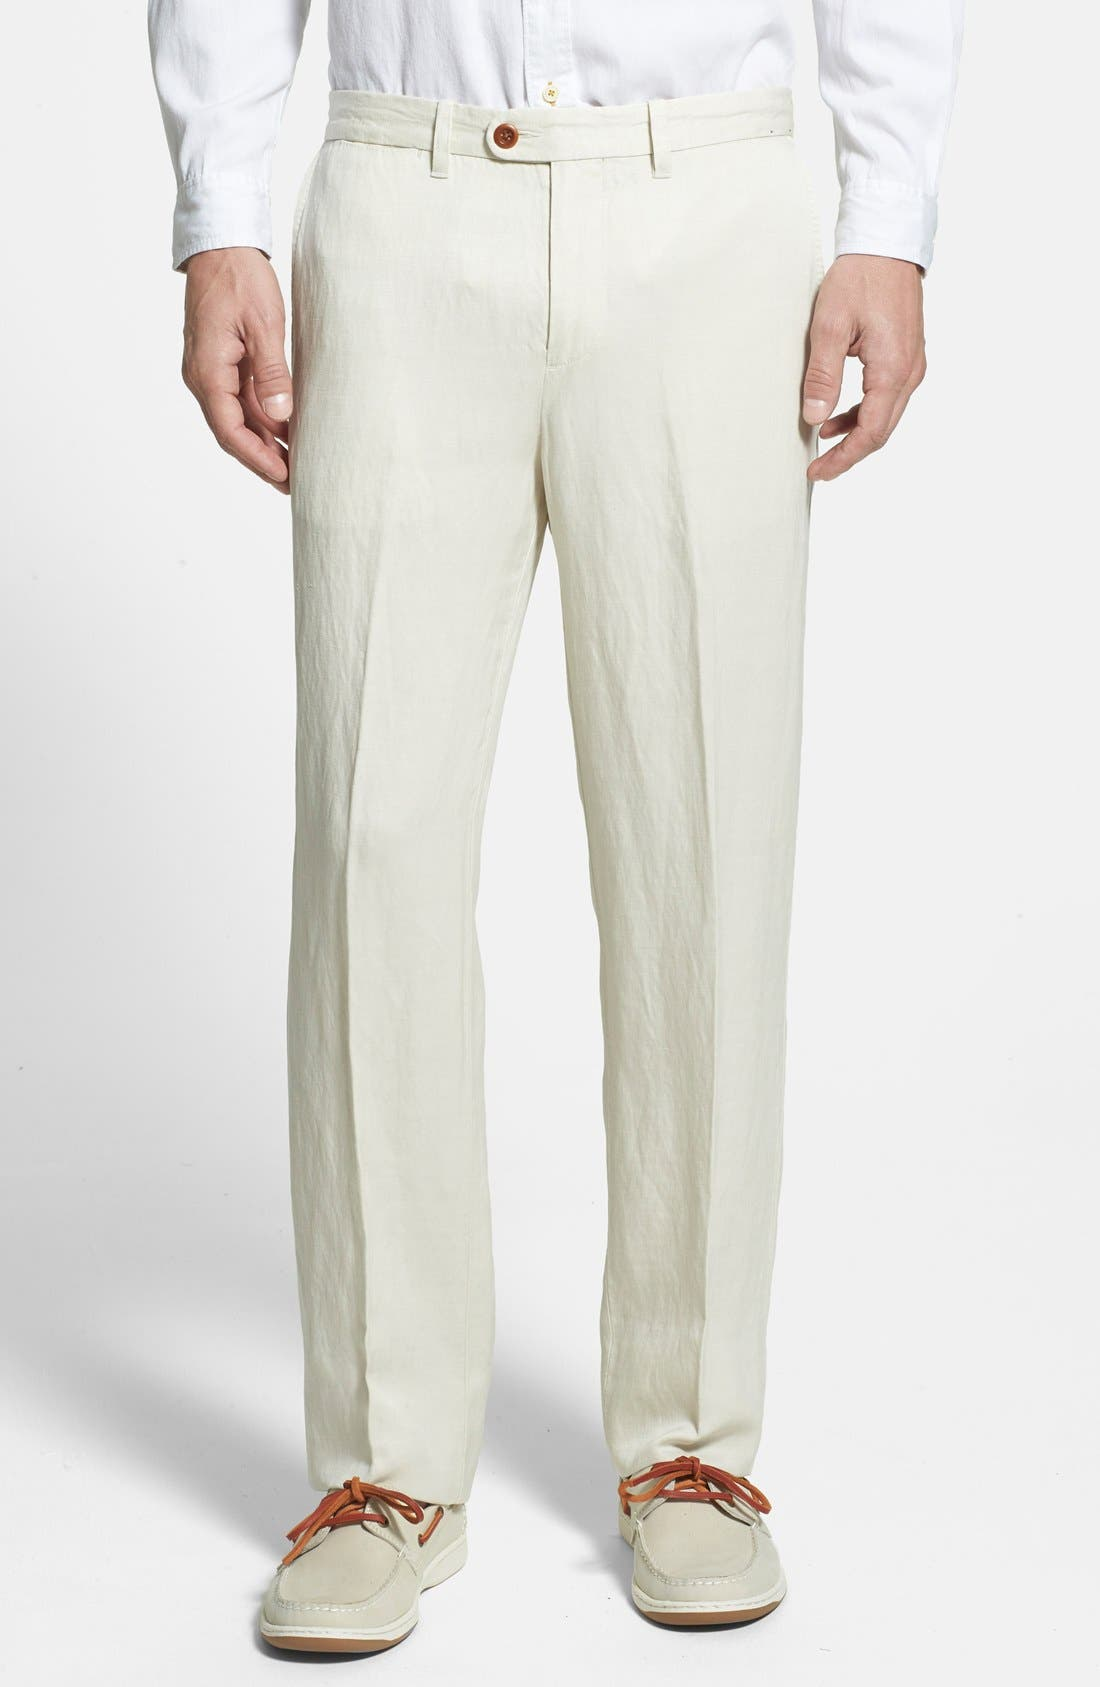 Alternate Image 1 Selected - Tommy Bahama 'La Jolla' Flat Front Pants